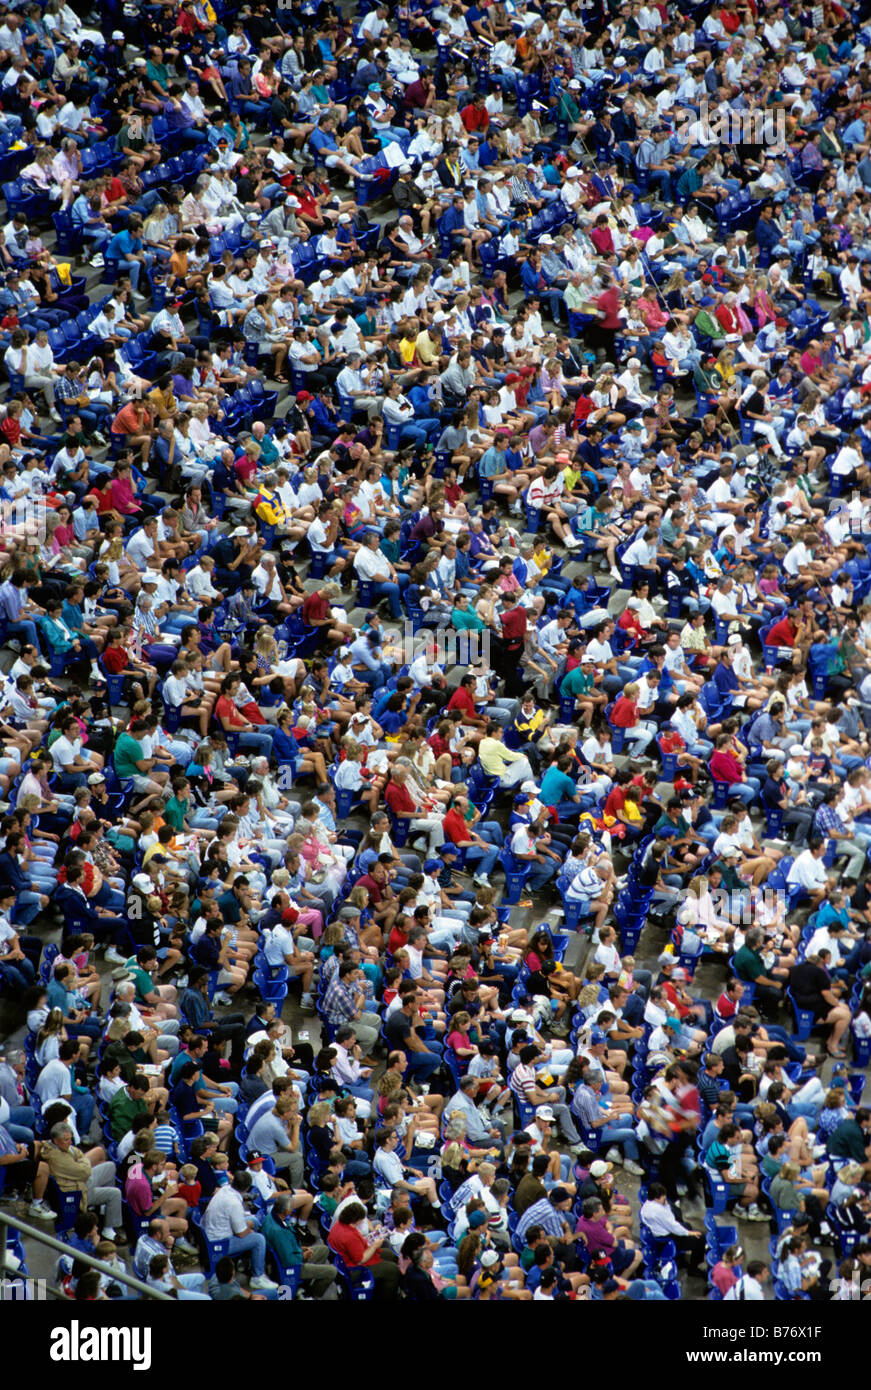 OVERHEAD VIEW OF CROWD OF SPECTATORS AT TWINS' BASEBALL GAME IN MINNEAPOLIS, MINNESOTA. - Stock Image